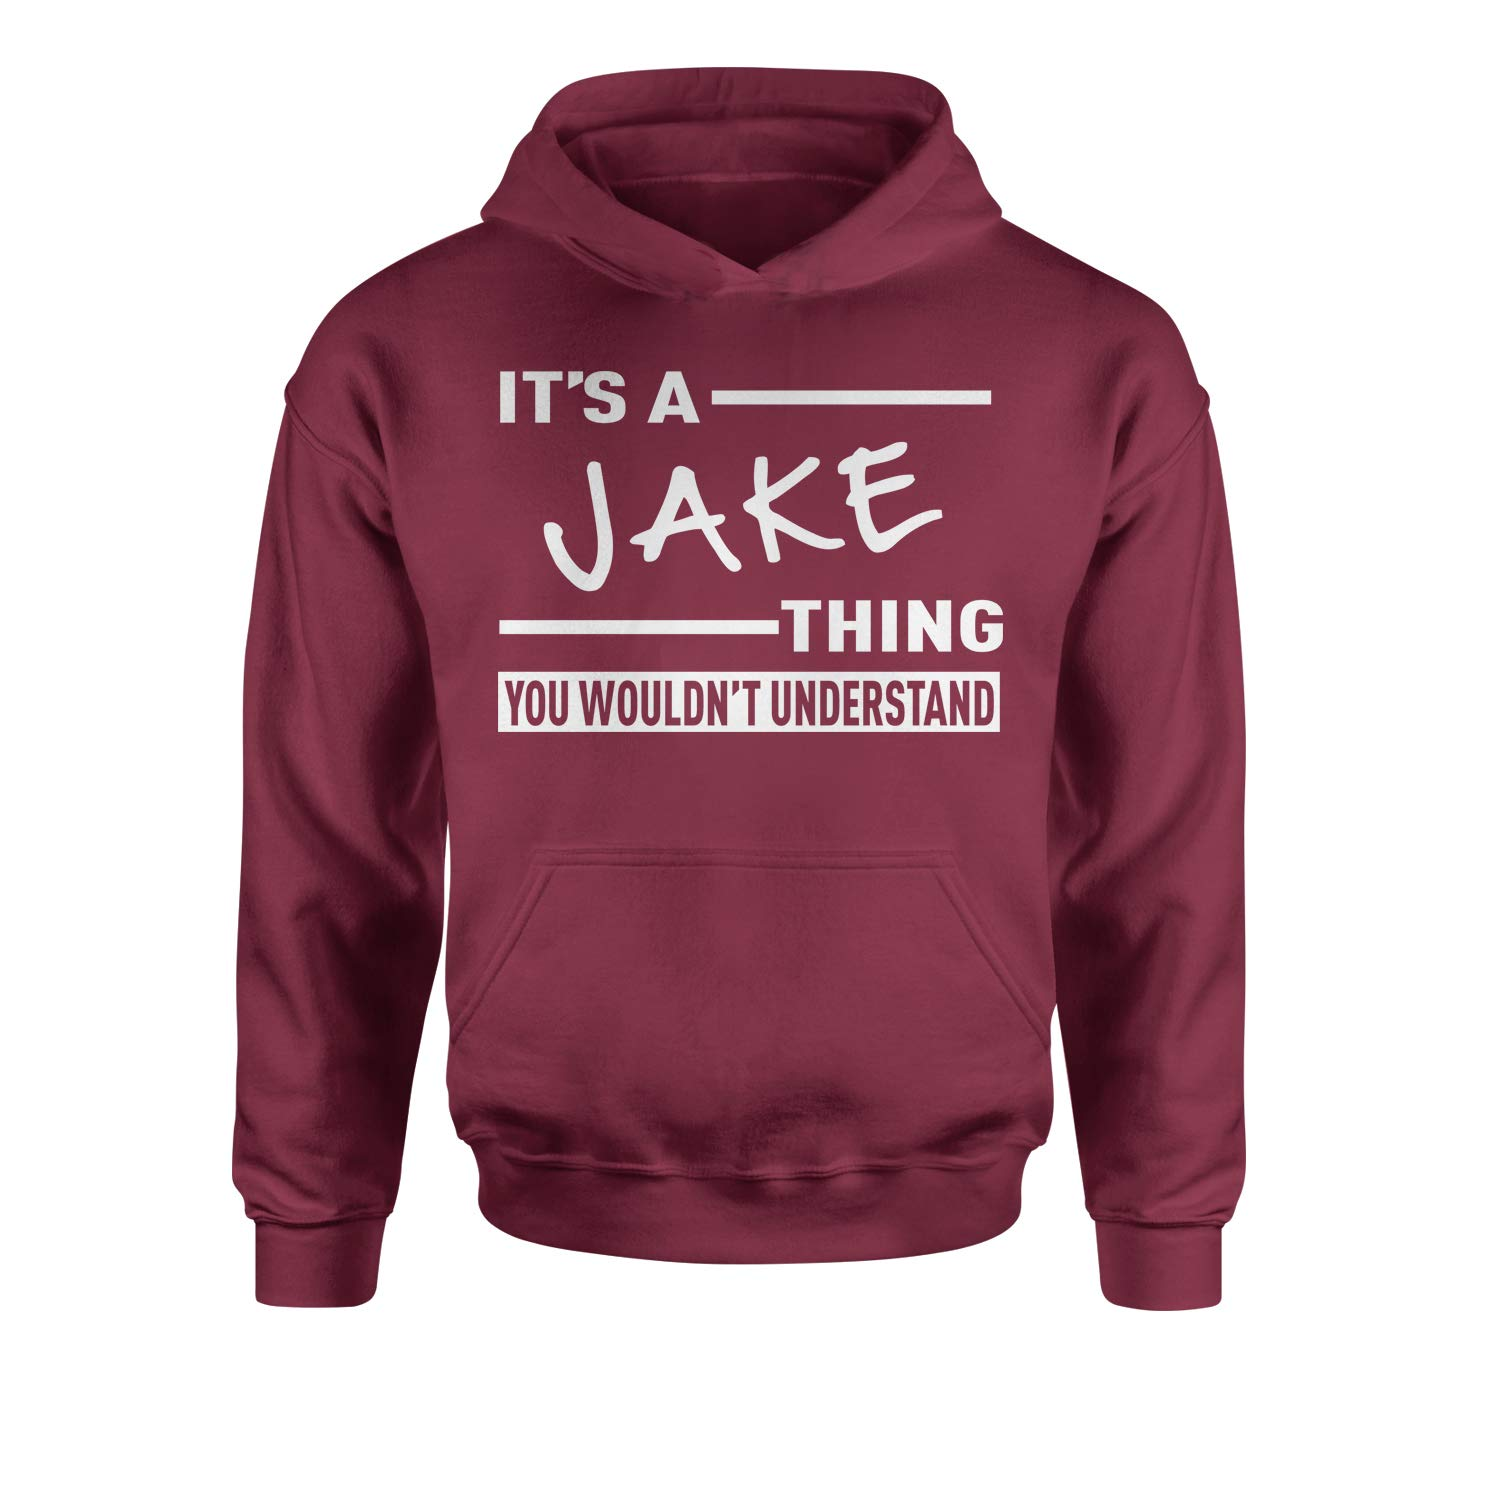 Expression Tees Its A Jake Thing You Wouldnt Understand Youth-Sized Hoodie